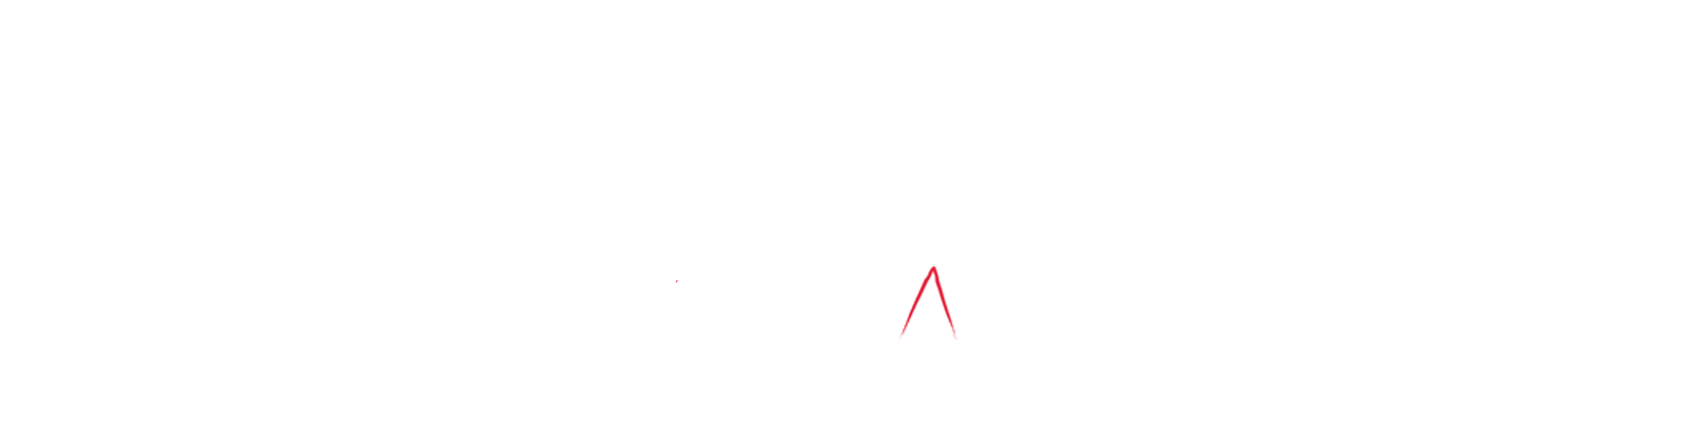 New York Speechwriters Roundtable